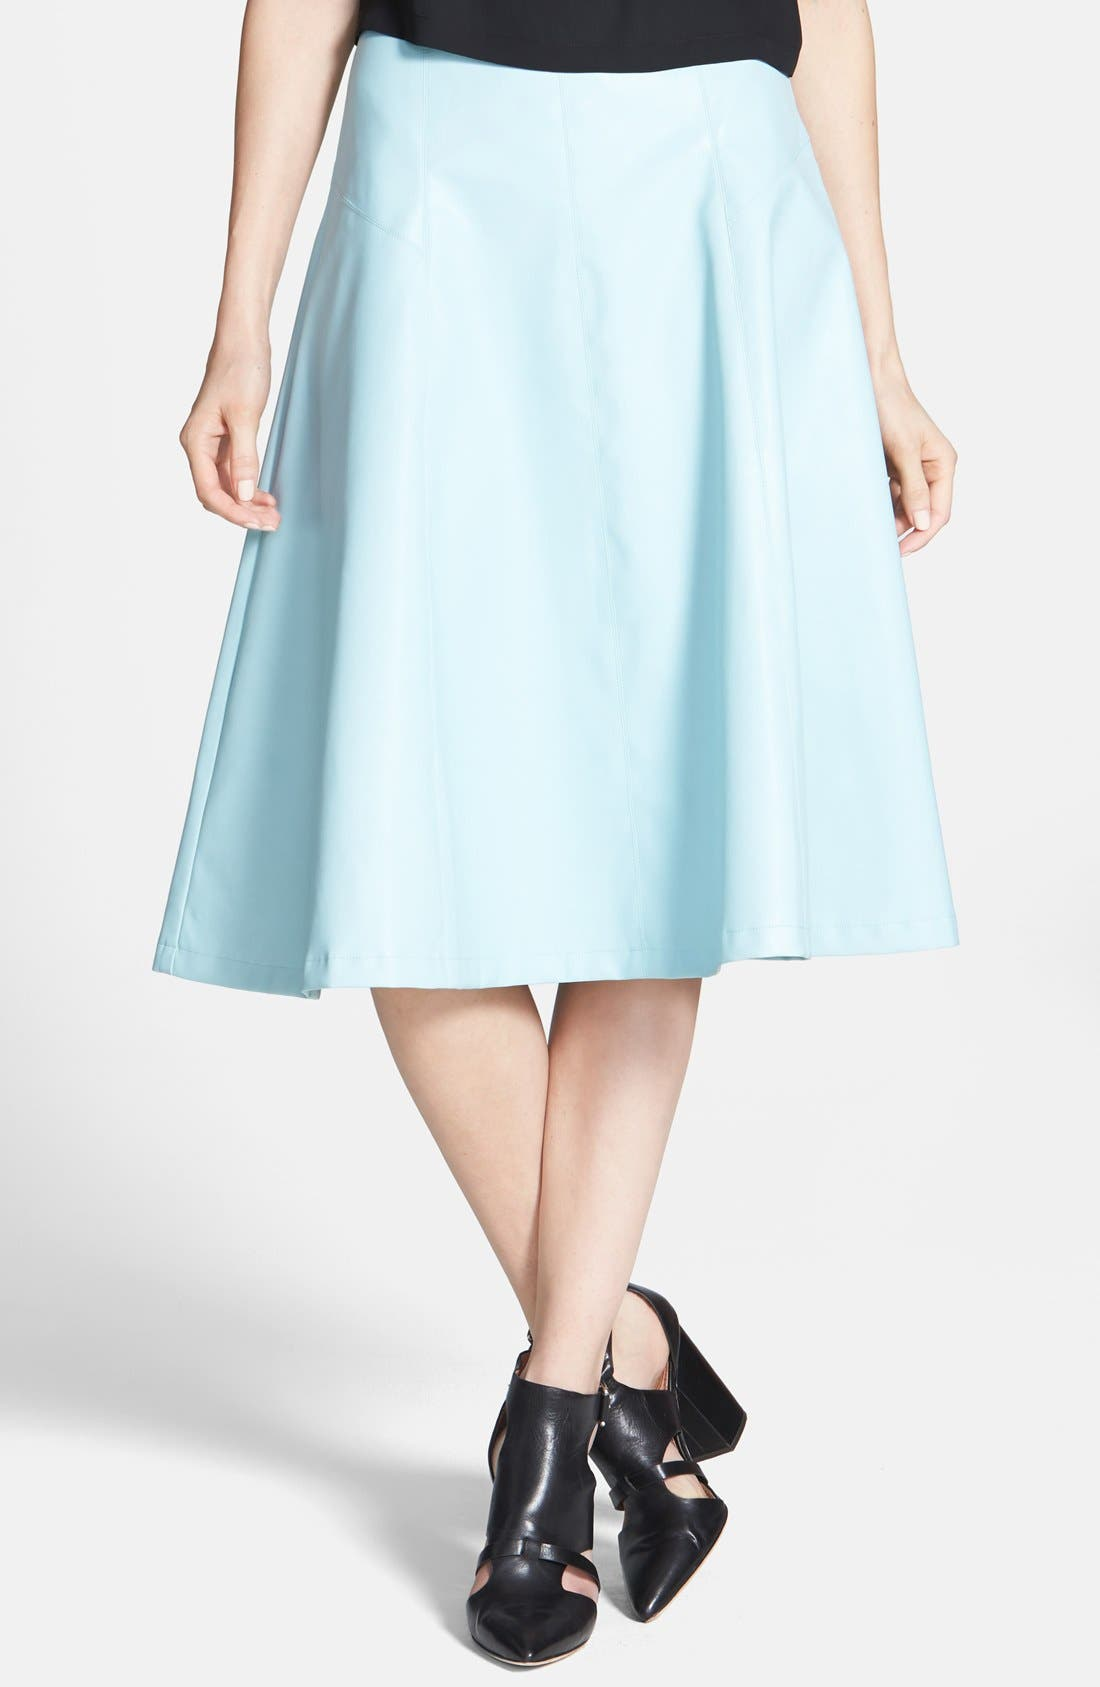 Alternate Image 1 Selected - ASTR Faux Leather A-Line Midi Skirt